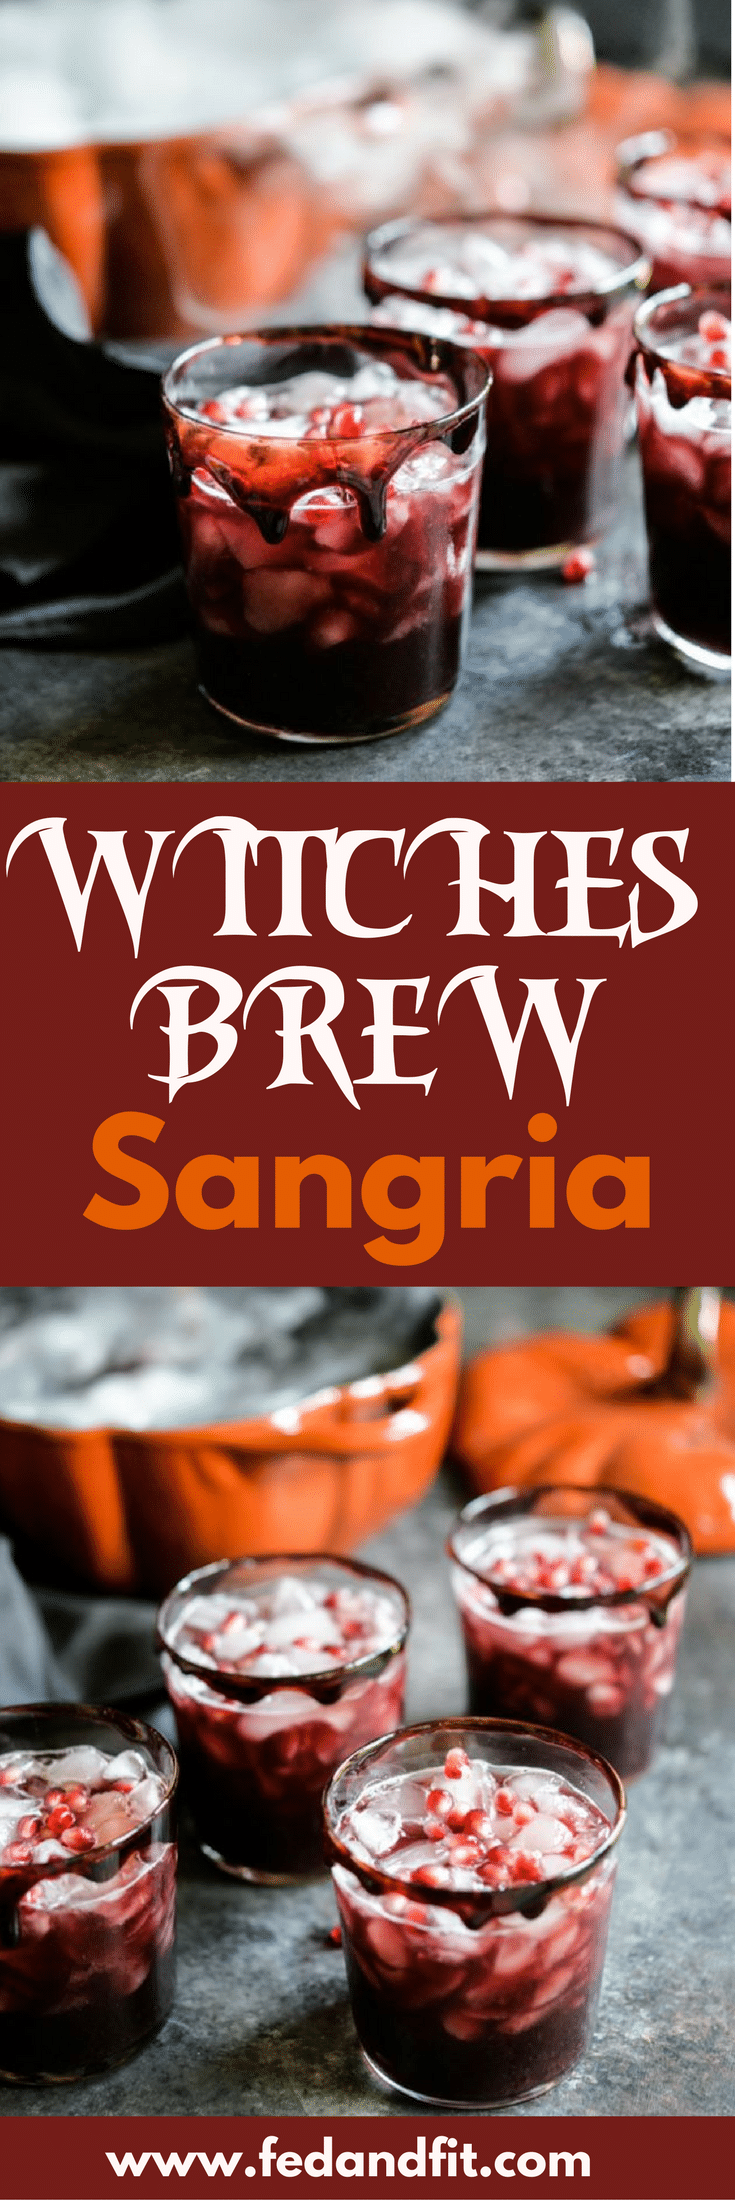 This Witches Brew Black Sangria is the perfect batch cocktail to make for your Halloween party this year. This punch is complete with spooky dry ice and fake blood rims made from cherry juice.